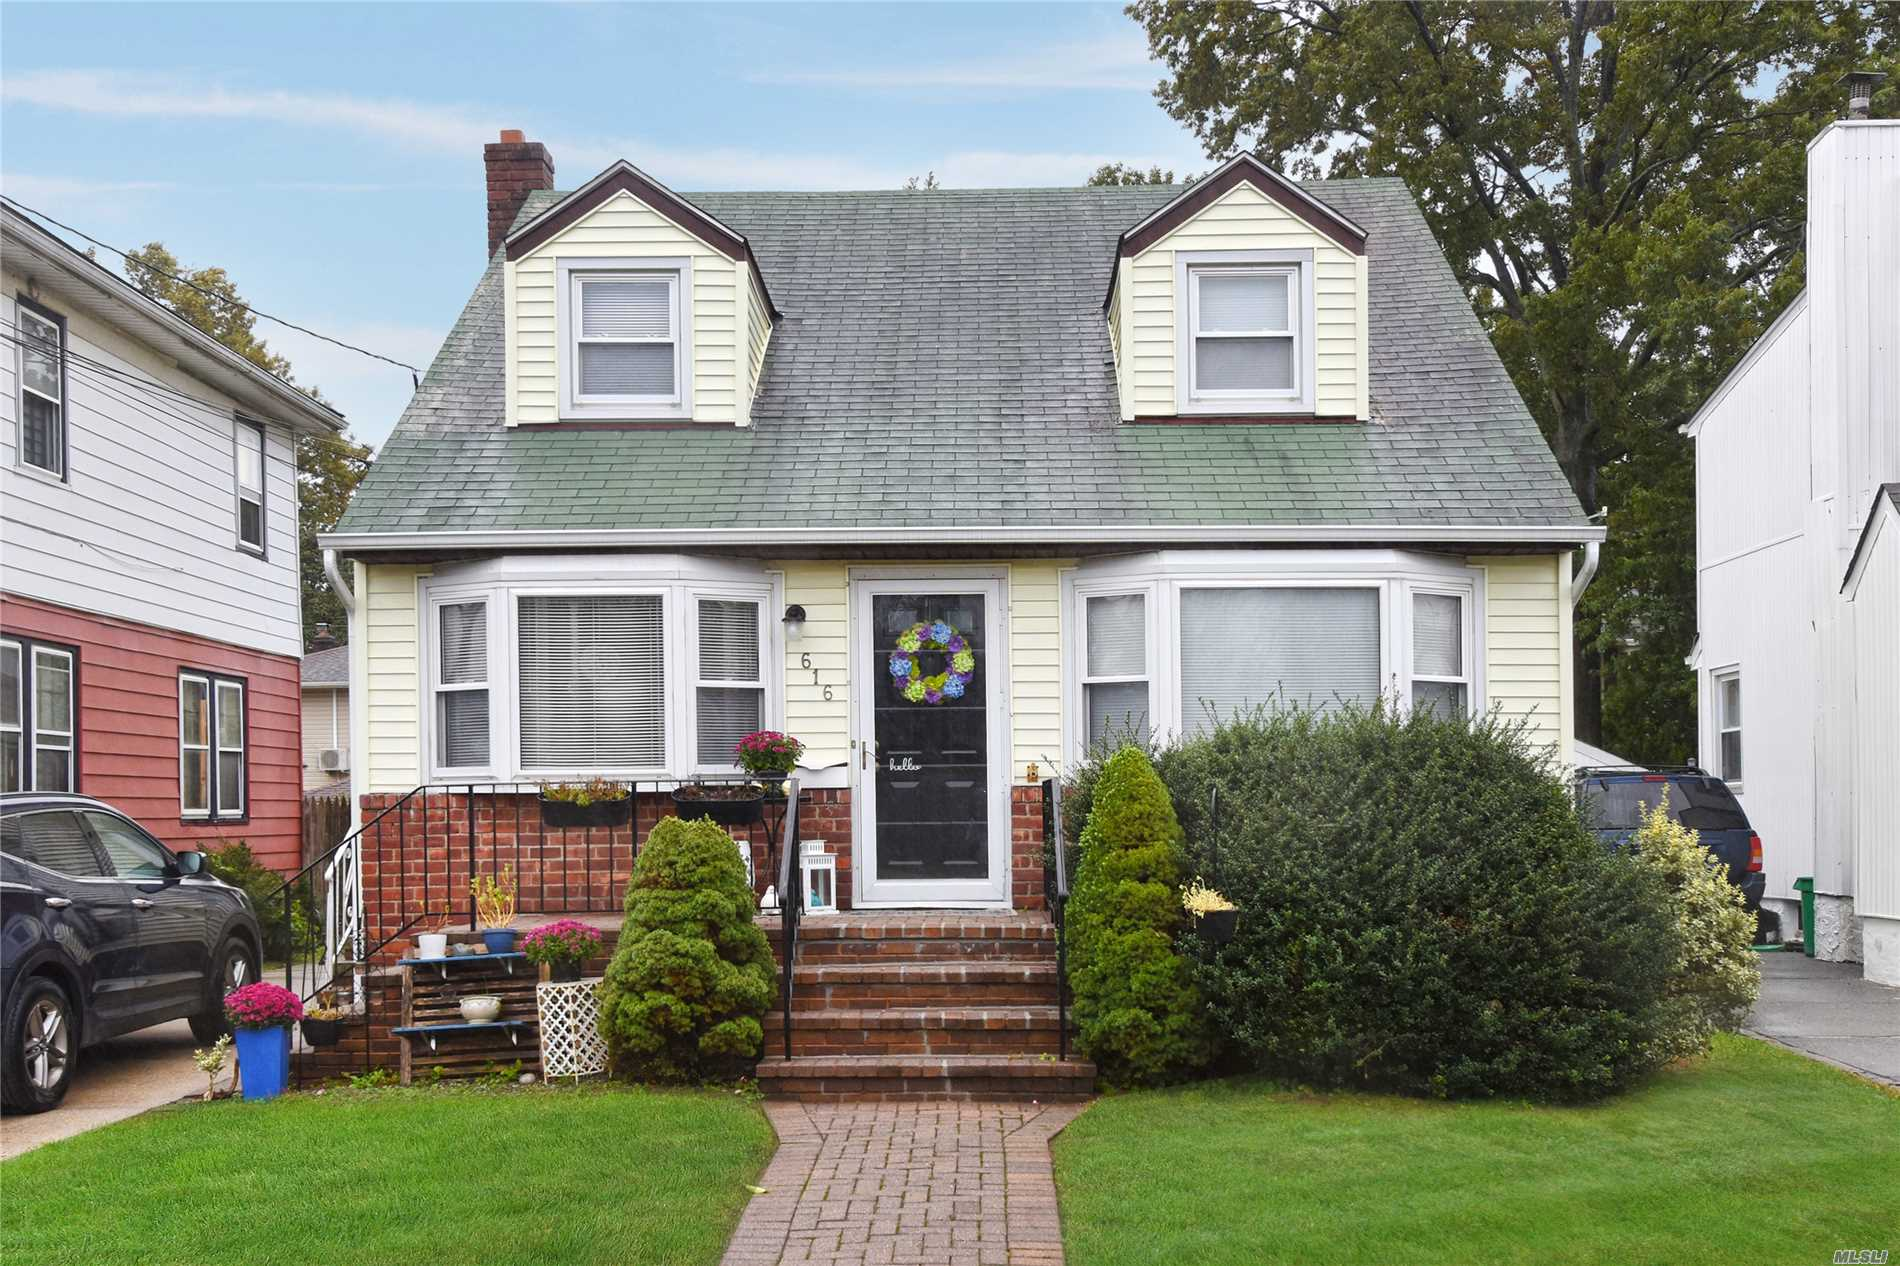 Charming Cape Cod In Desirable New Hyde Park, (4) Bedrooms (2.5) Bathrooms, Newly Renovated Kitchen, Ss Appl., Updated Baths, Hardwood Floors Throughout, Partially Finished Bsmt, Hot Water Tank 2 Years Old. New In-Ground Sprinklers. New Gutters & Leaders, Beautiful Yard. Convenient To All Village Amenities,  House Of Worship, Schools And Restaurants. Walking Distance To Lirr And Buses